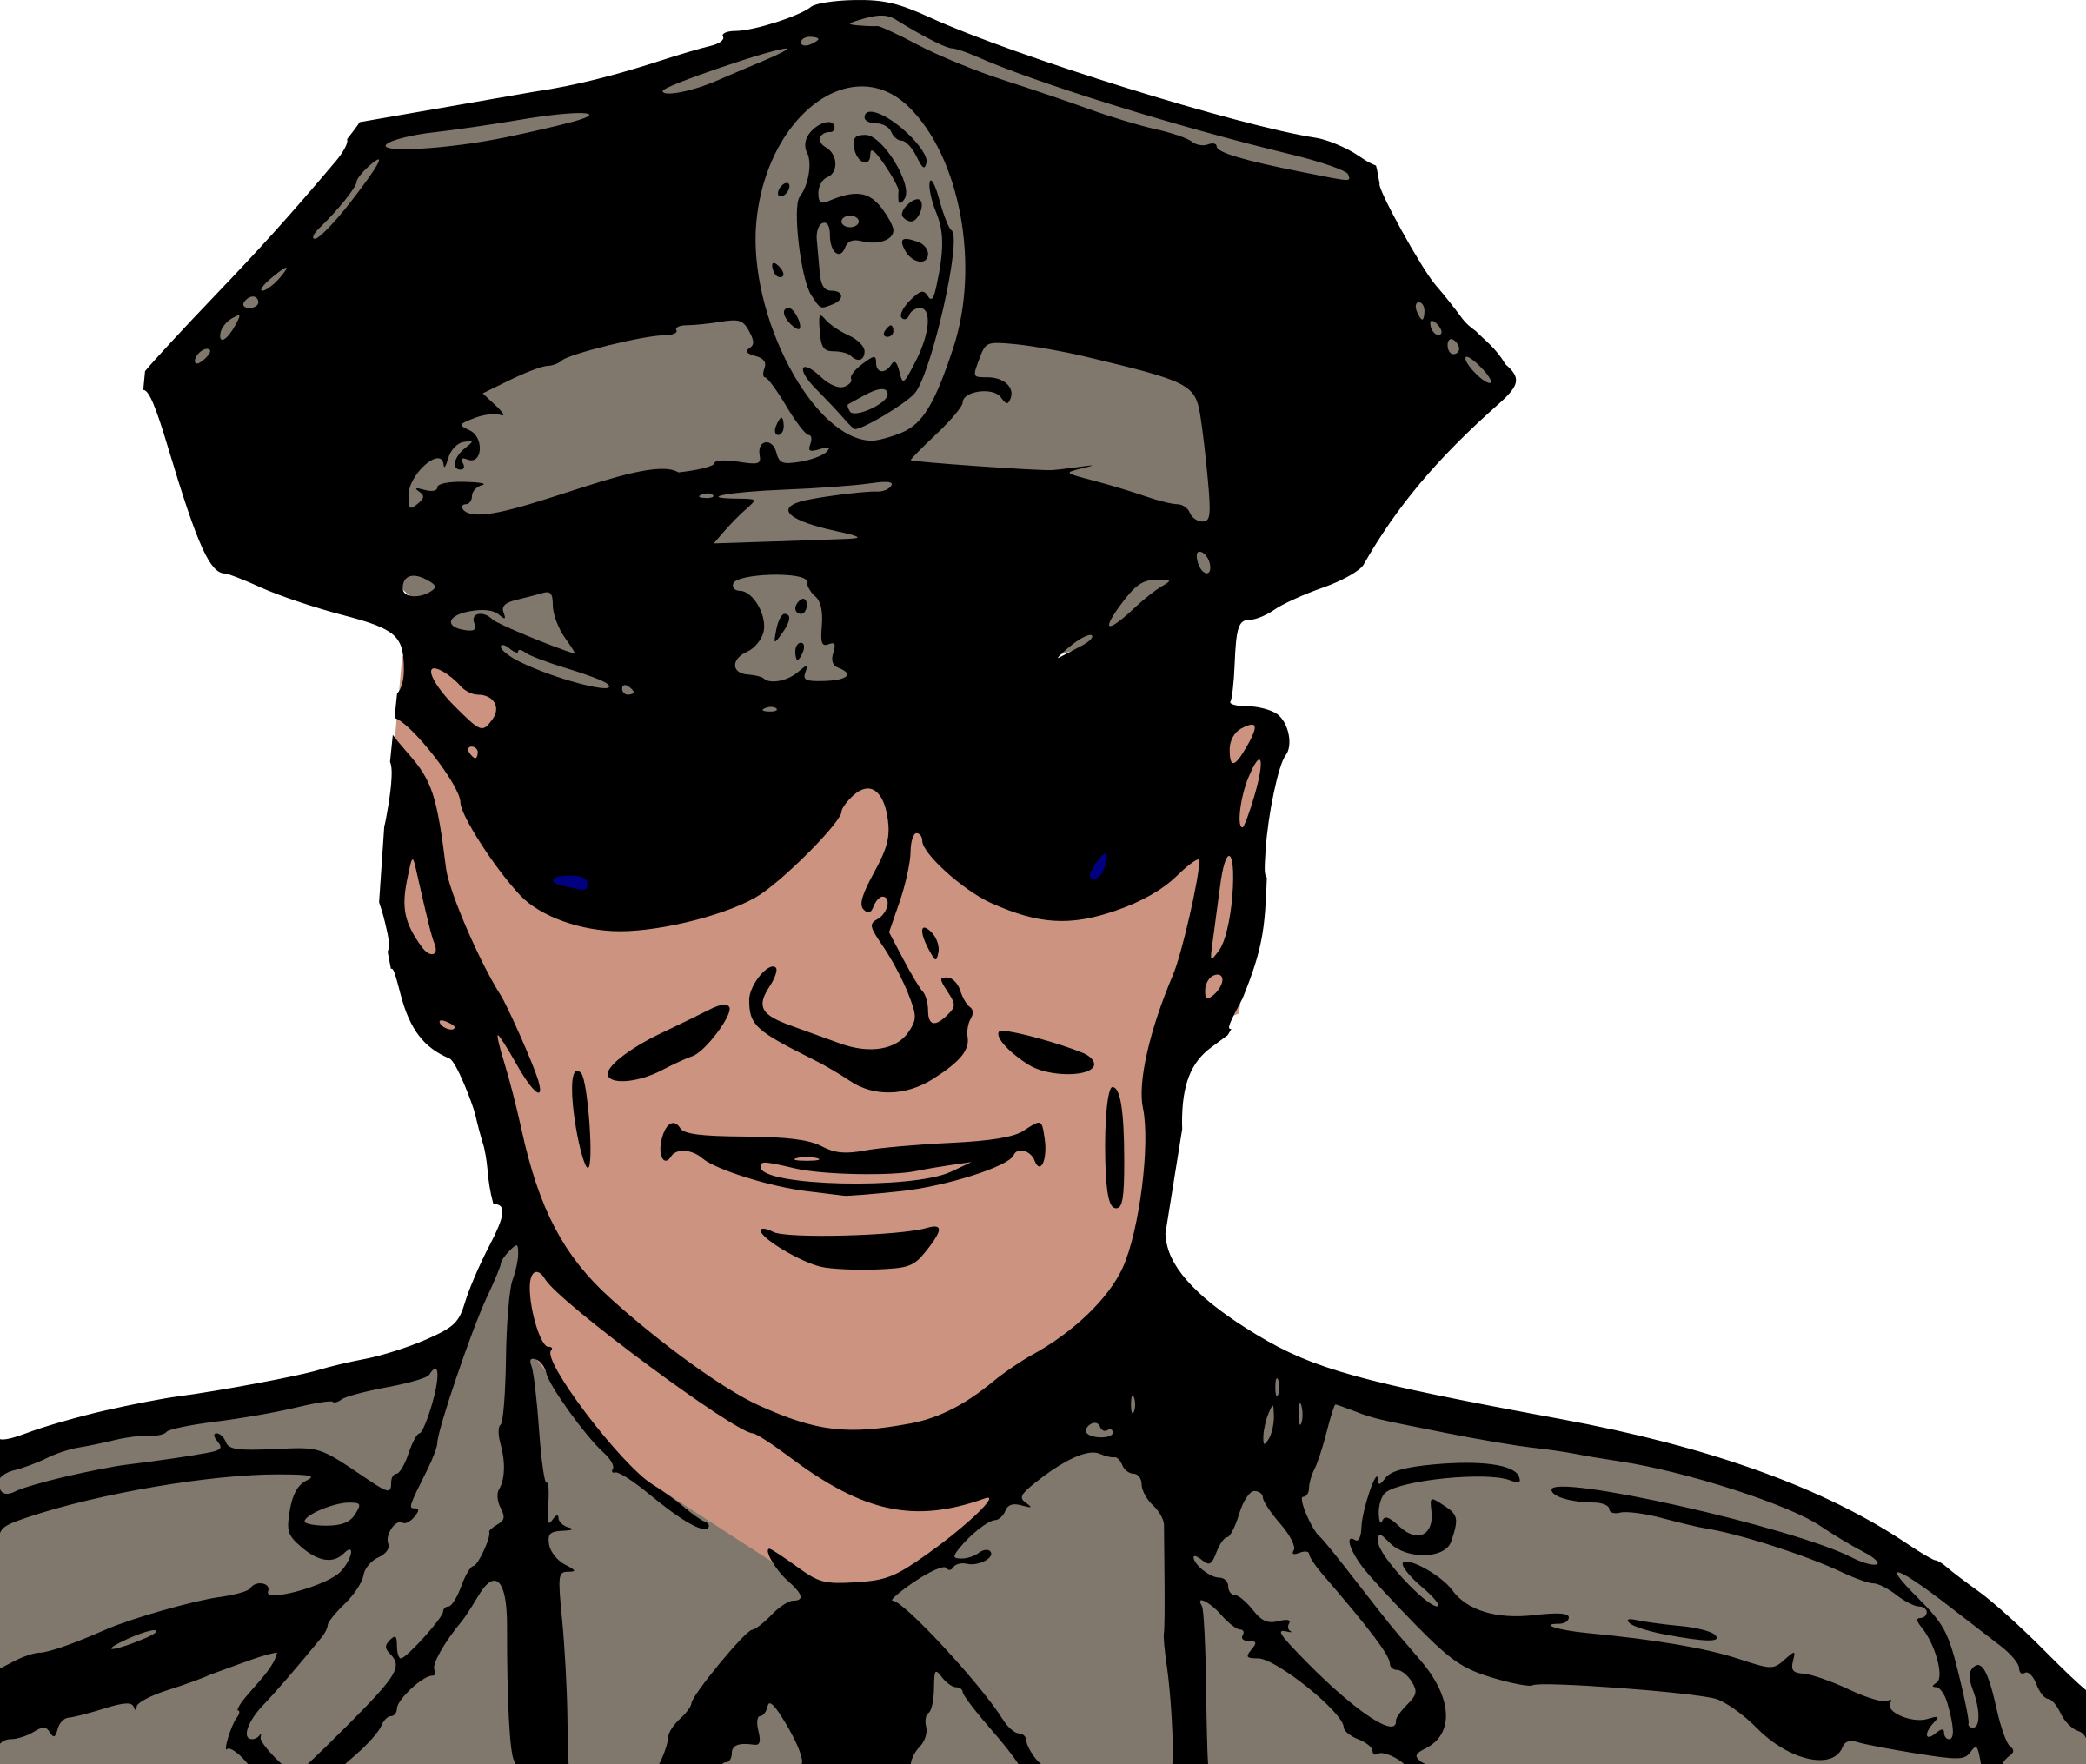 Police with Sunglasses vector clipart image - Free stock photo - Public Domain photo - CC0 Images